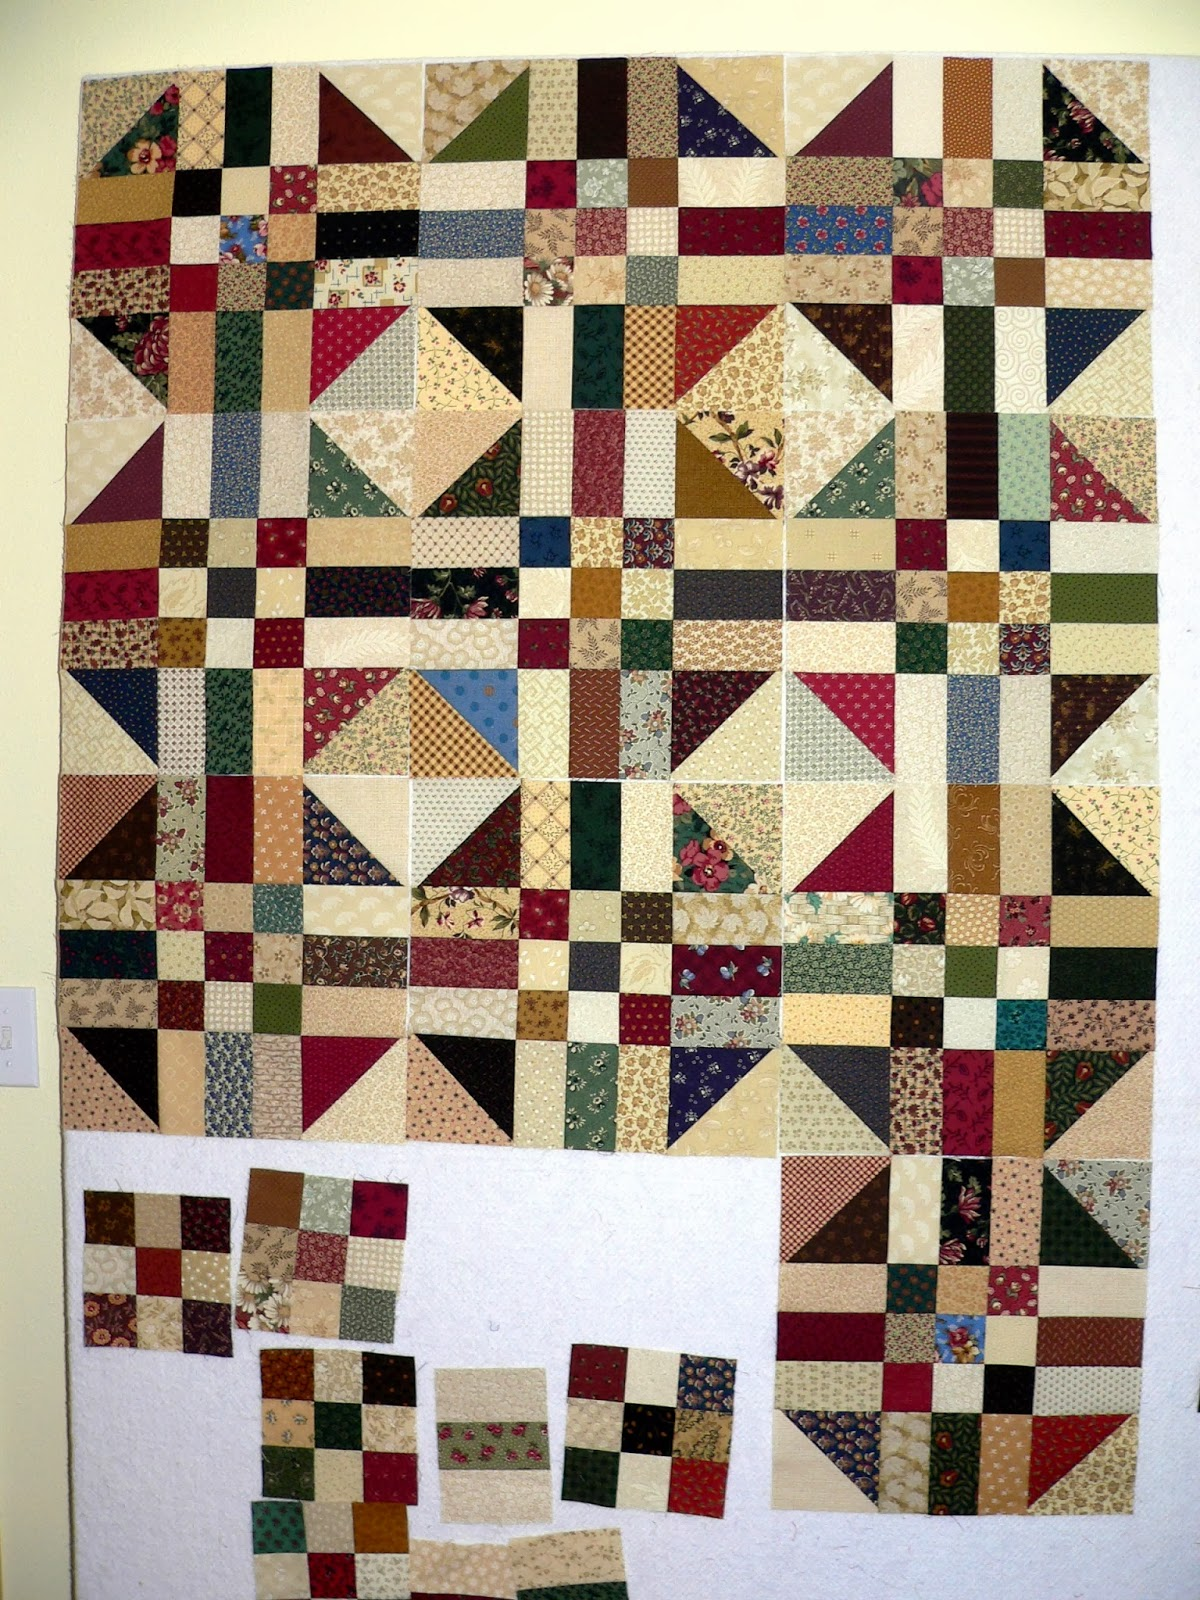 Asimplelife Quilts Design Wall Tuesday